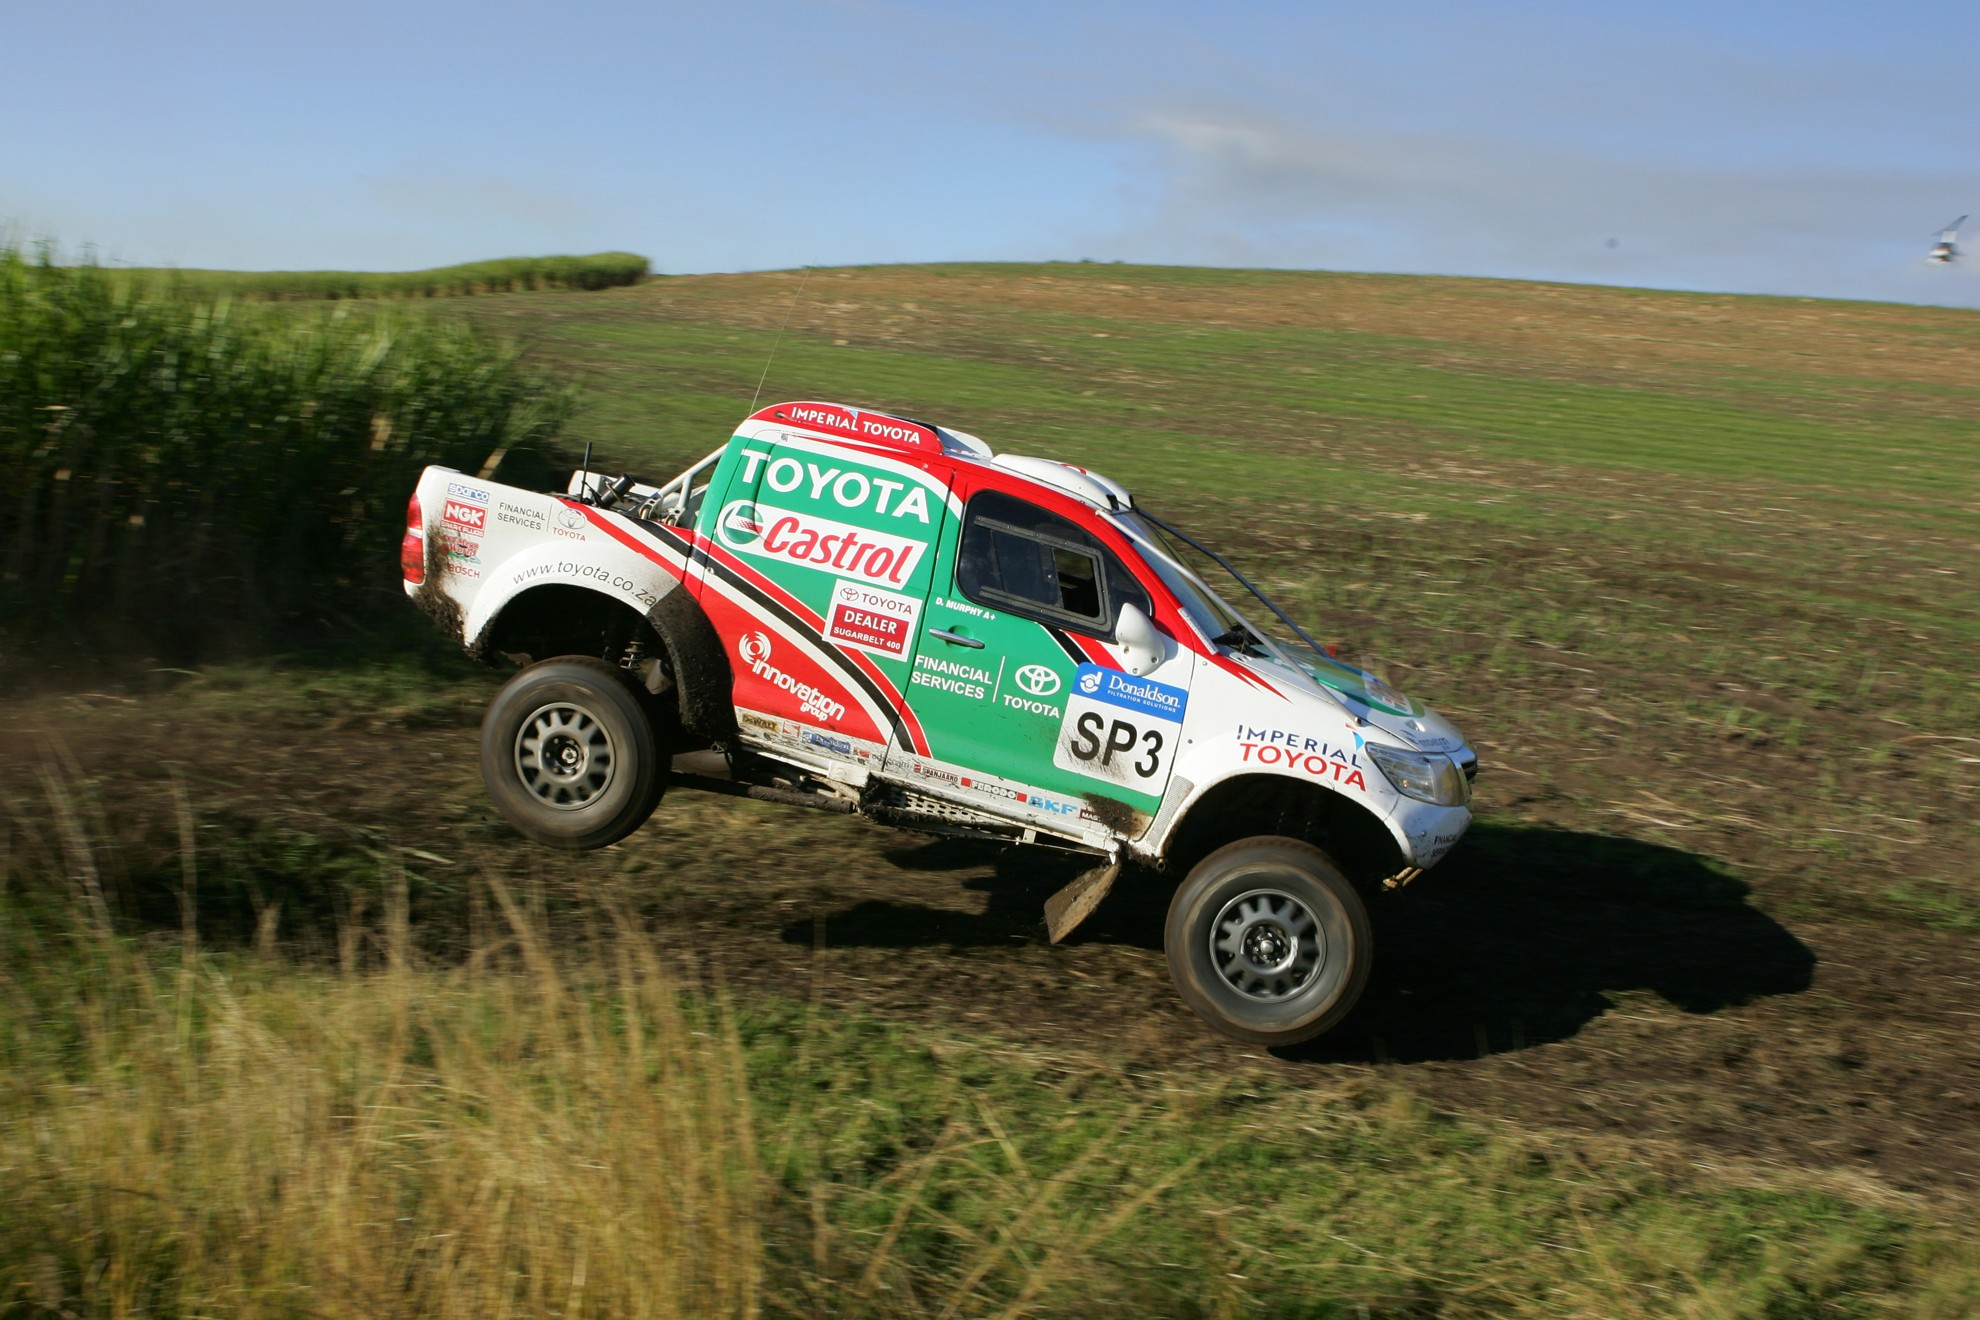 Toyota Rally Sugarbelt 400